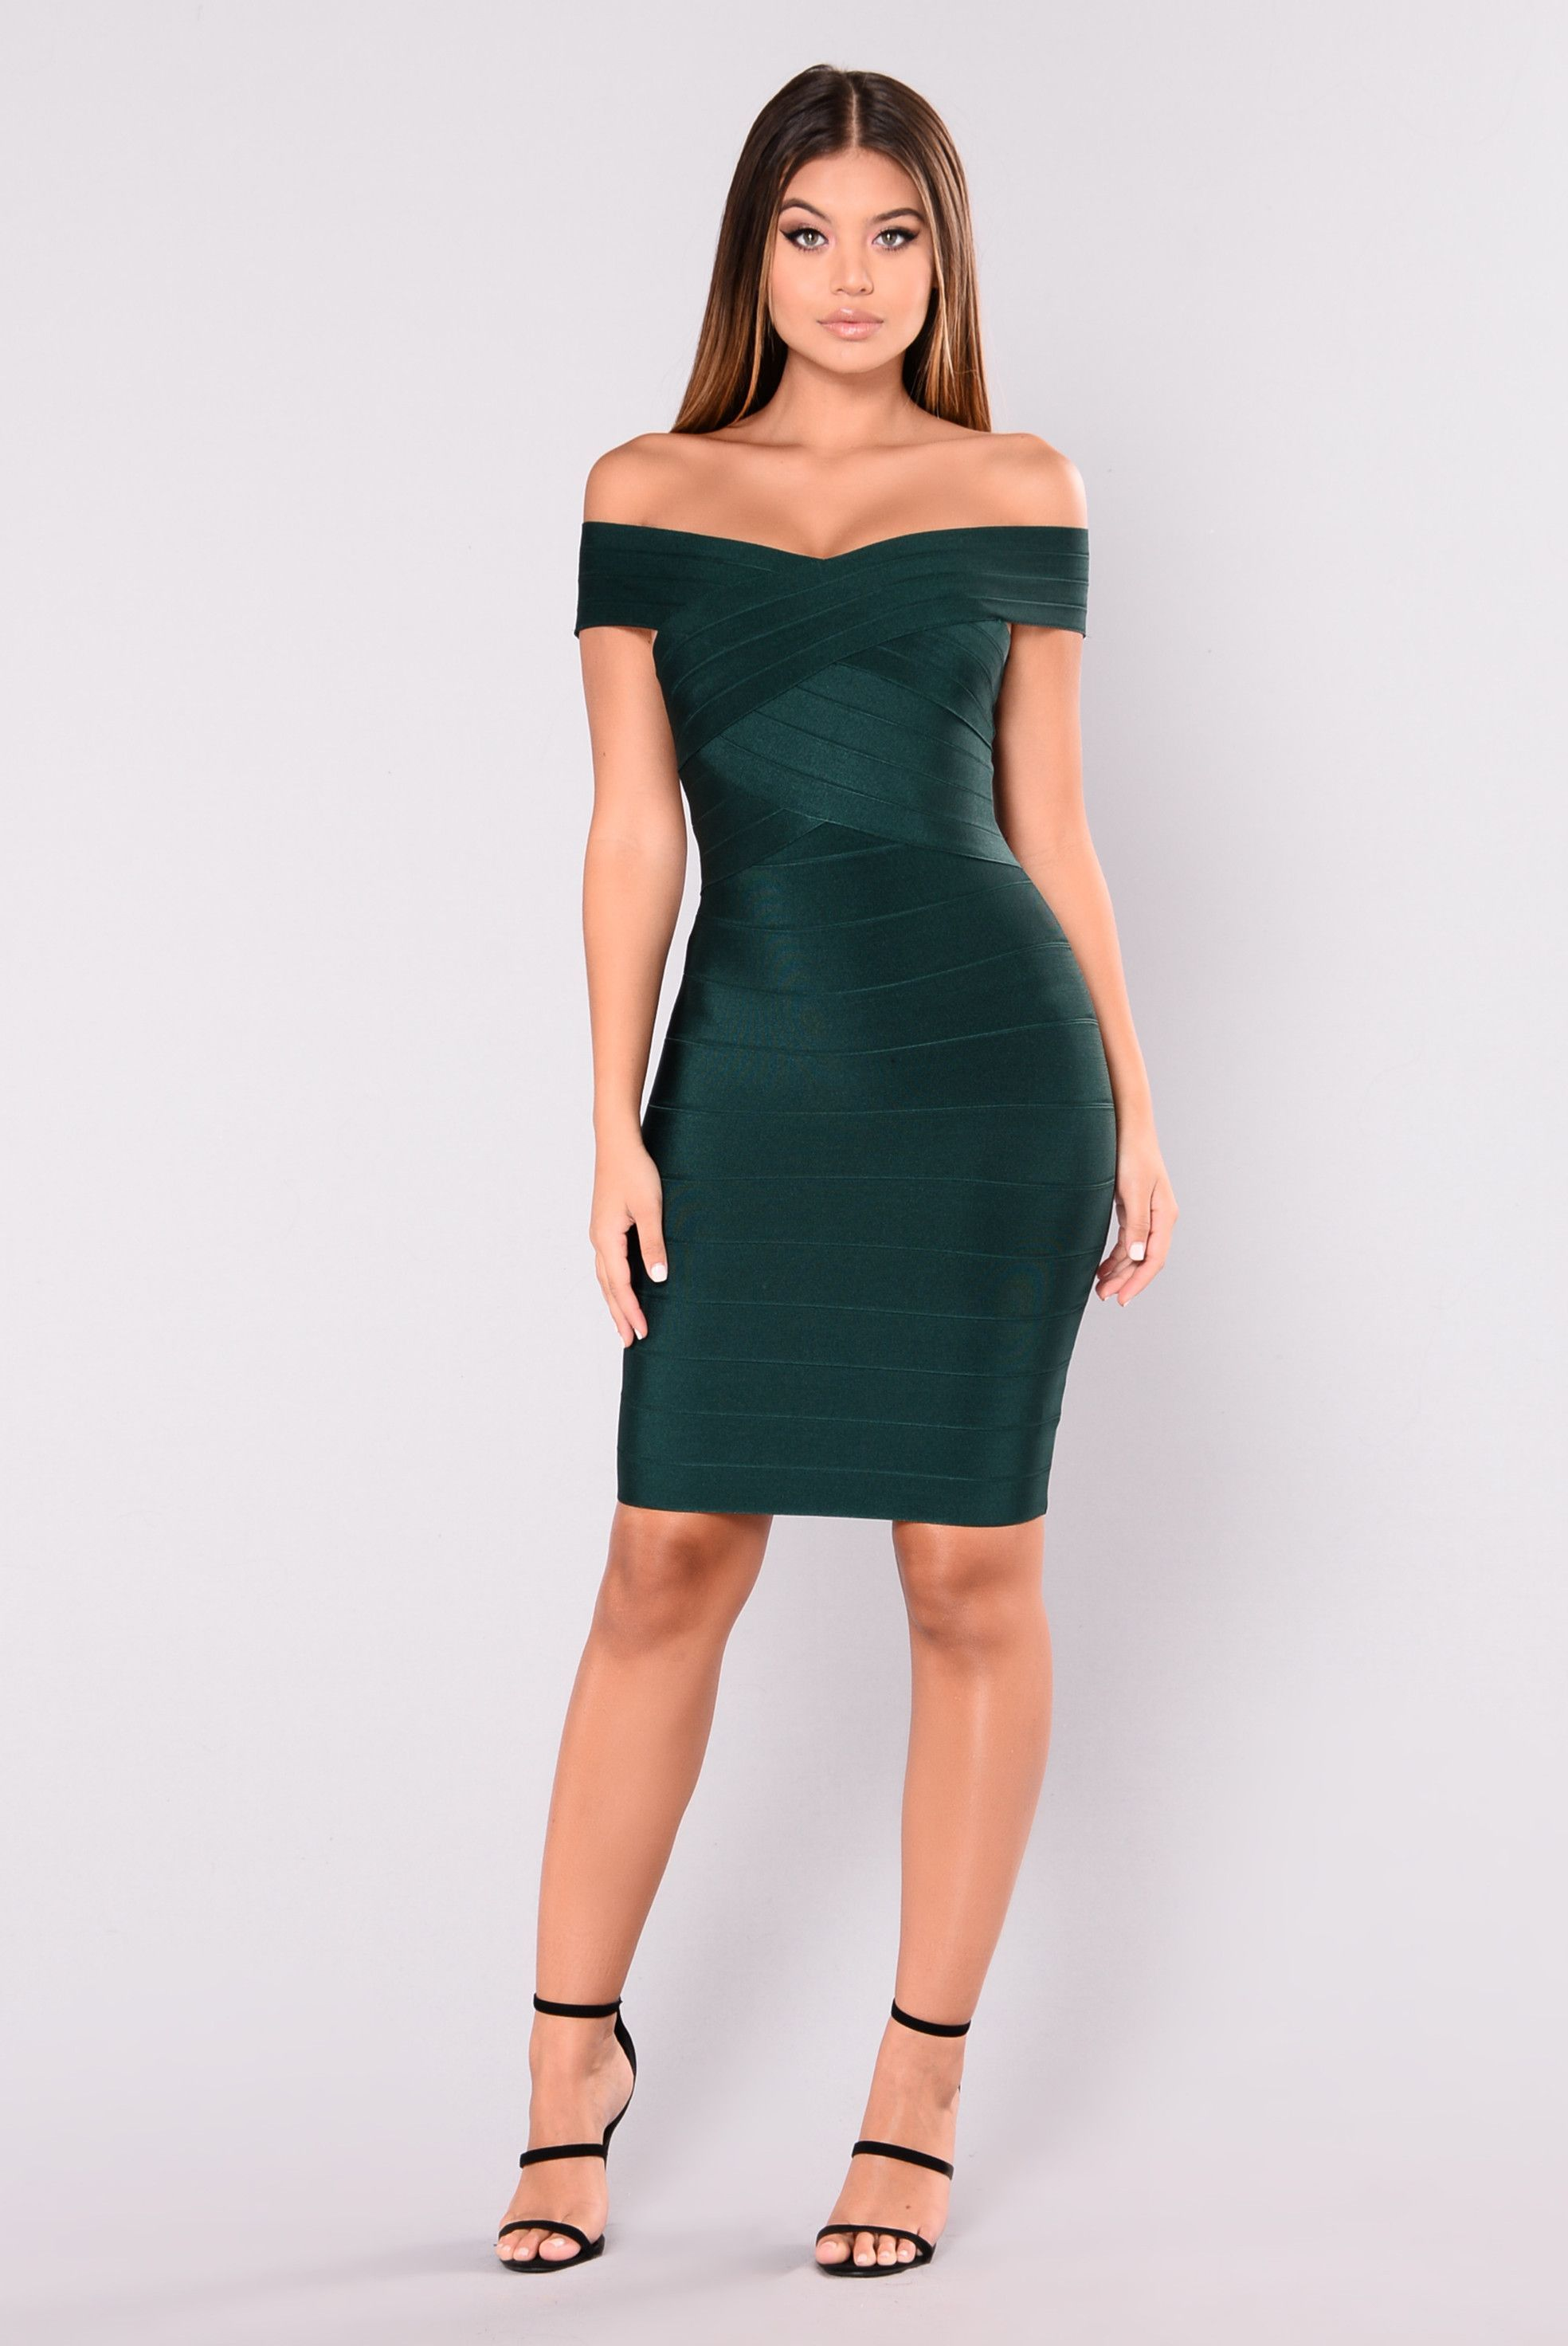 e98f0841939b Cross My Body Dress - Hunter Green in 2019